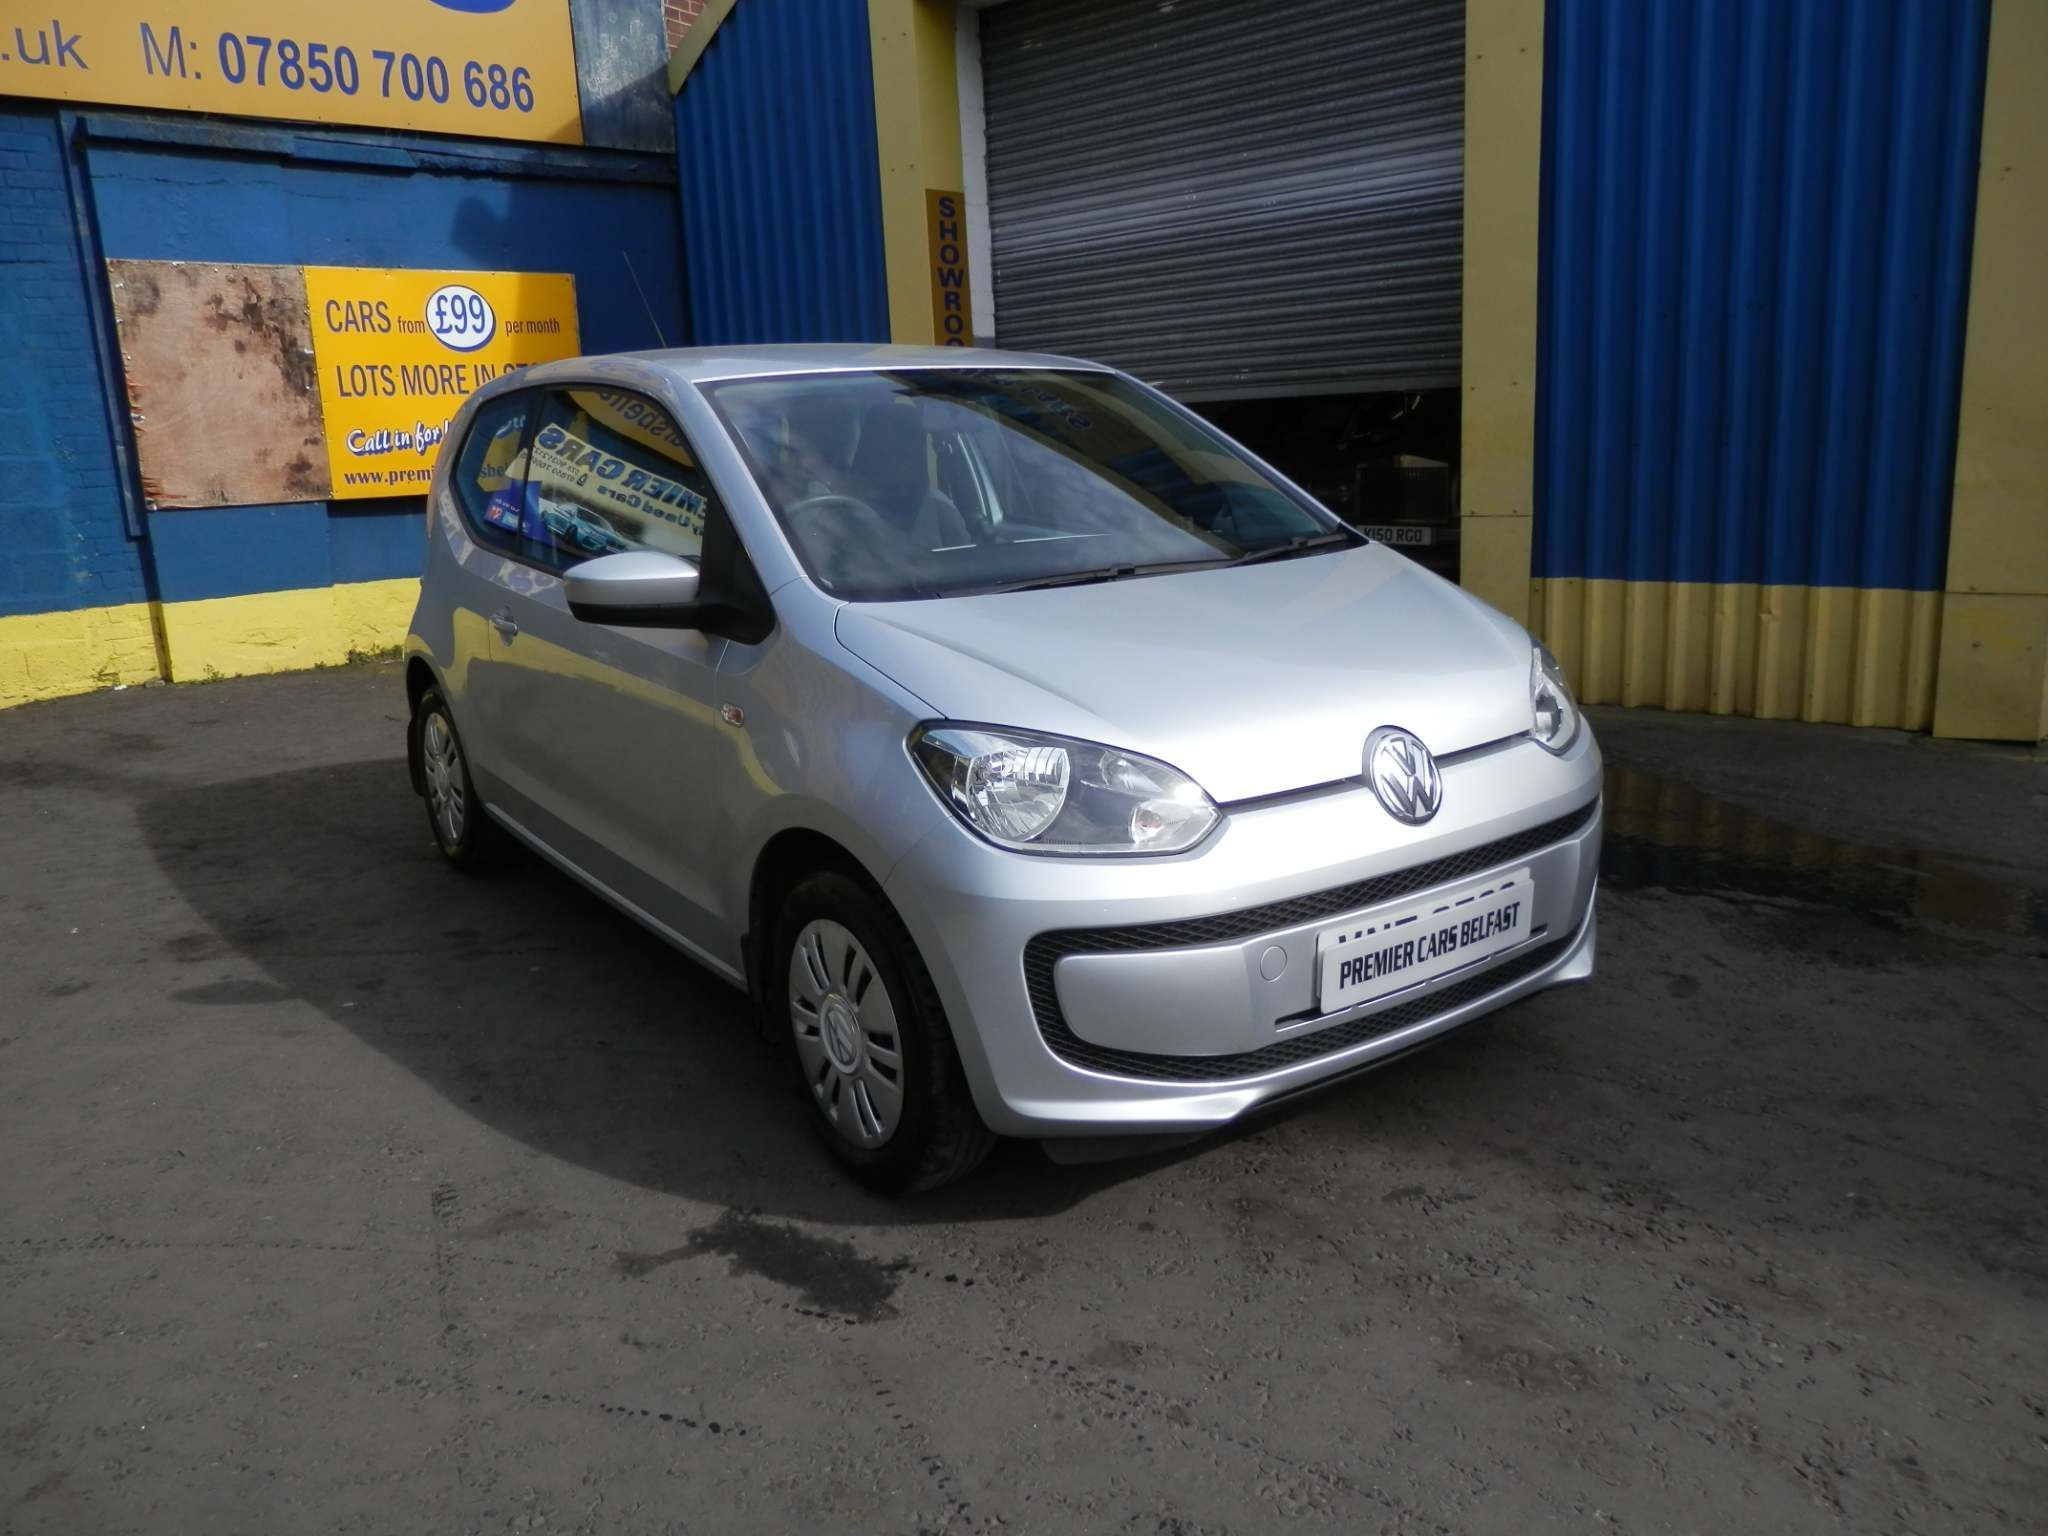 2012 VOLKSWAGEN up! 1.0 Move Petrol Manual  – Premier Cars Belfast Belfast